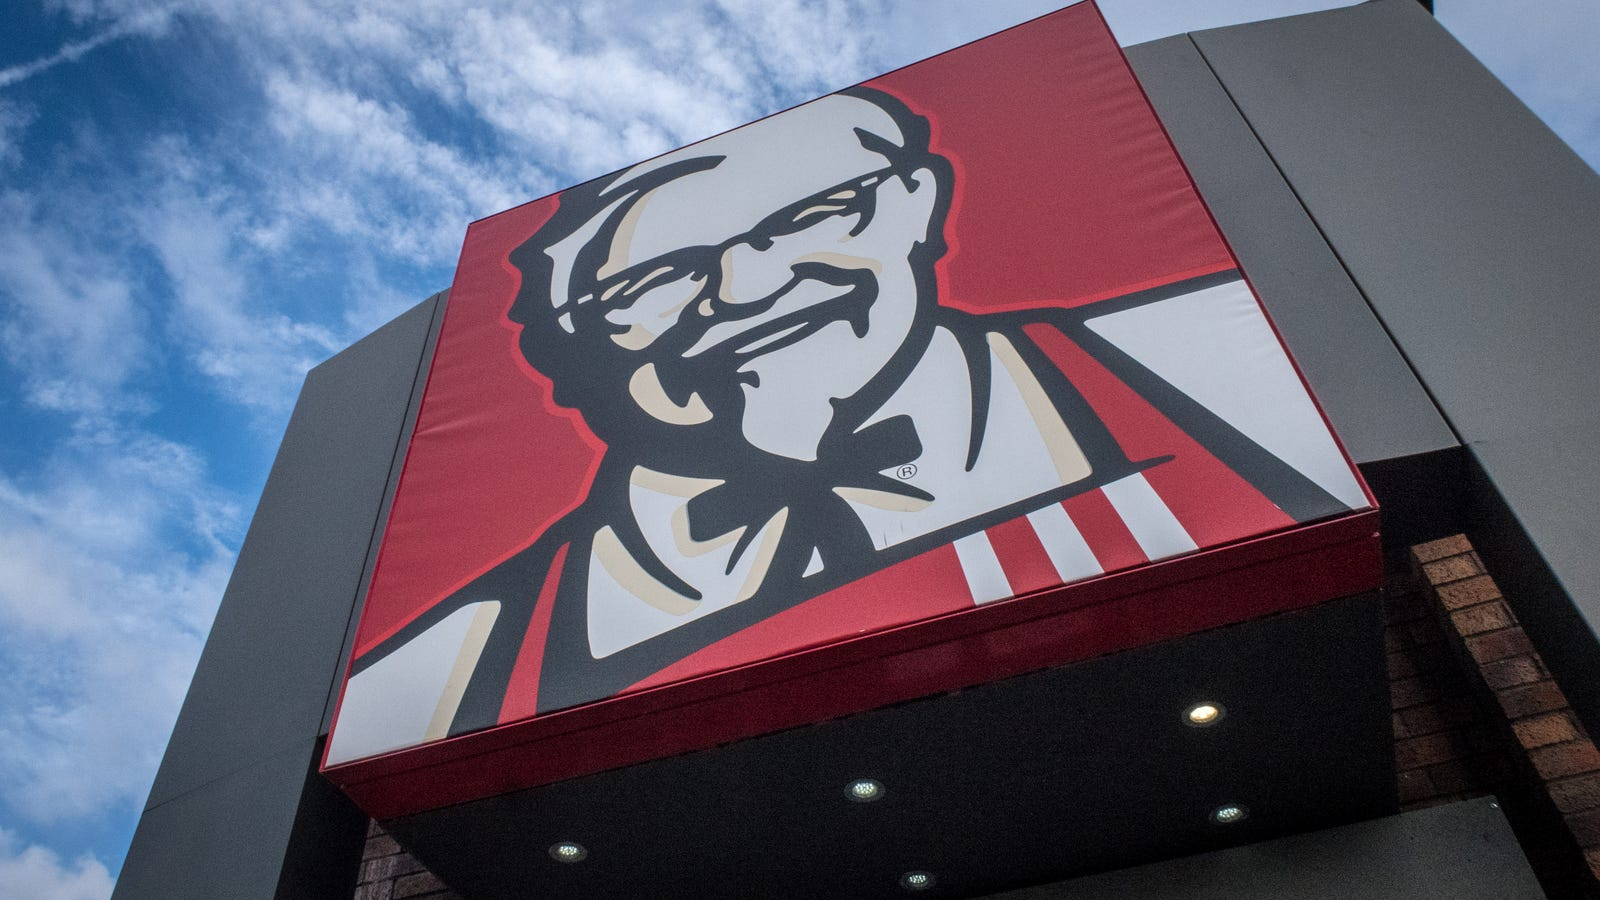 Police in Berlin Intend to Press Charges Against Black Customers who Recorded Alleged Racist Encounter at KFC